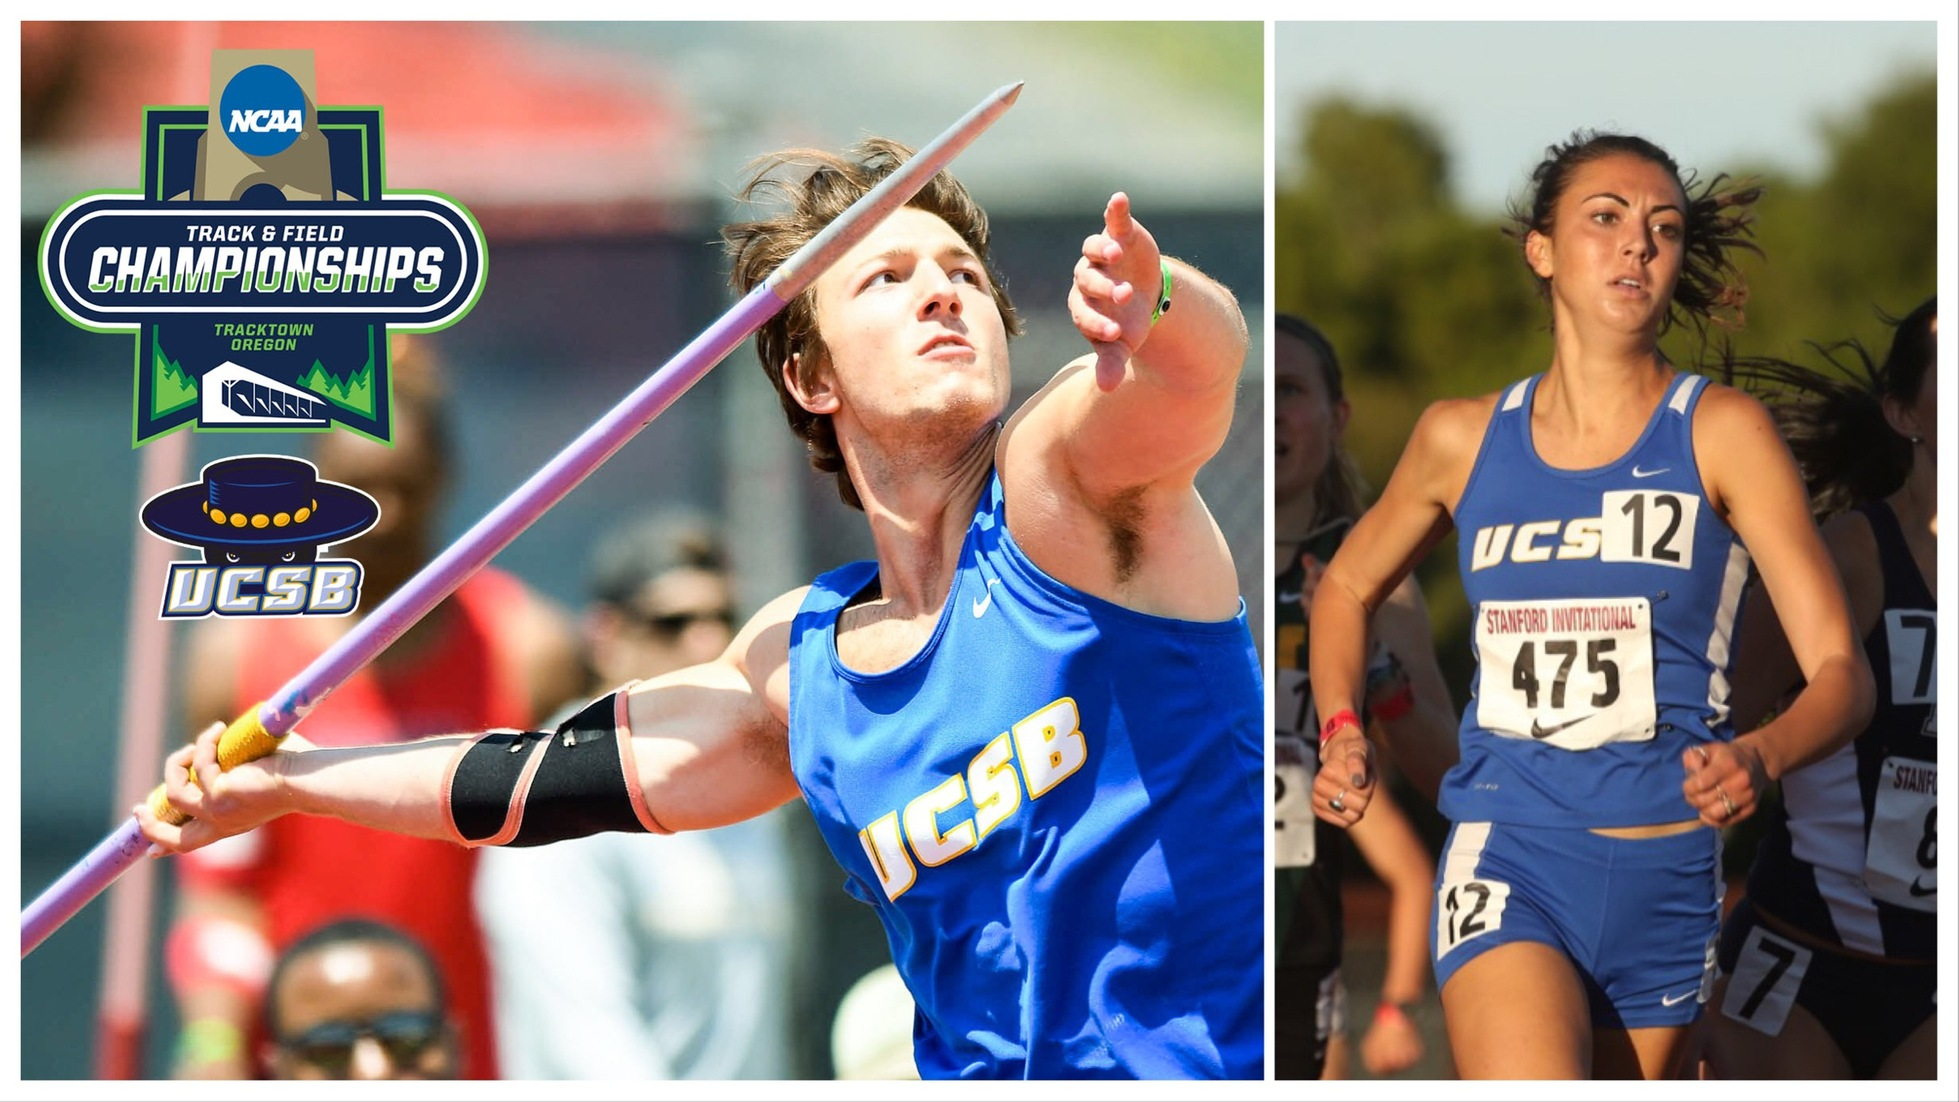 Kuskey, Hinkle Qualify to 2017 NCAA Championships